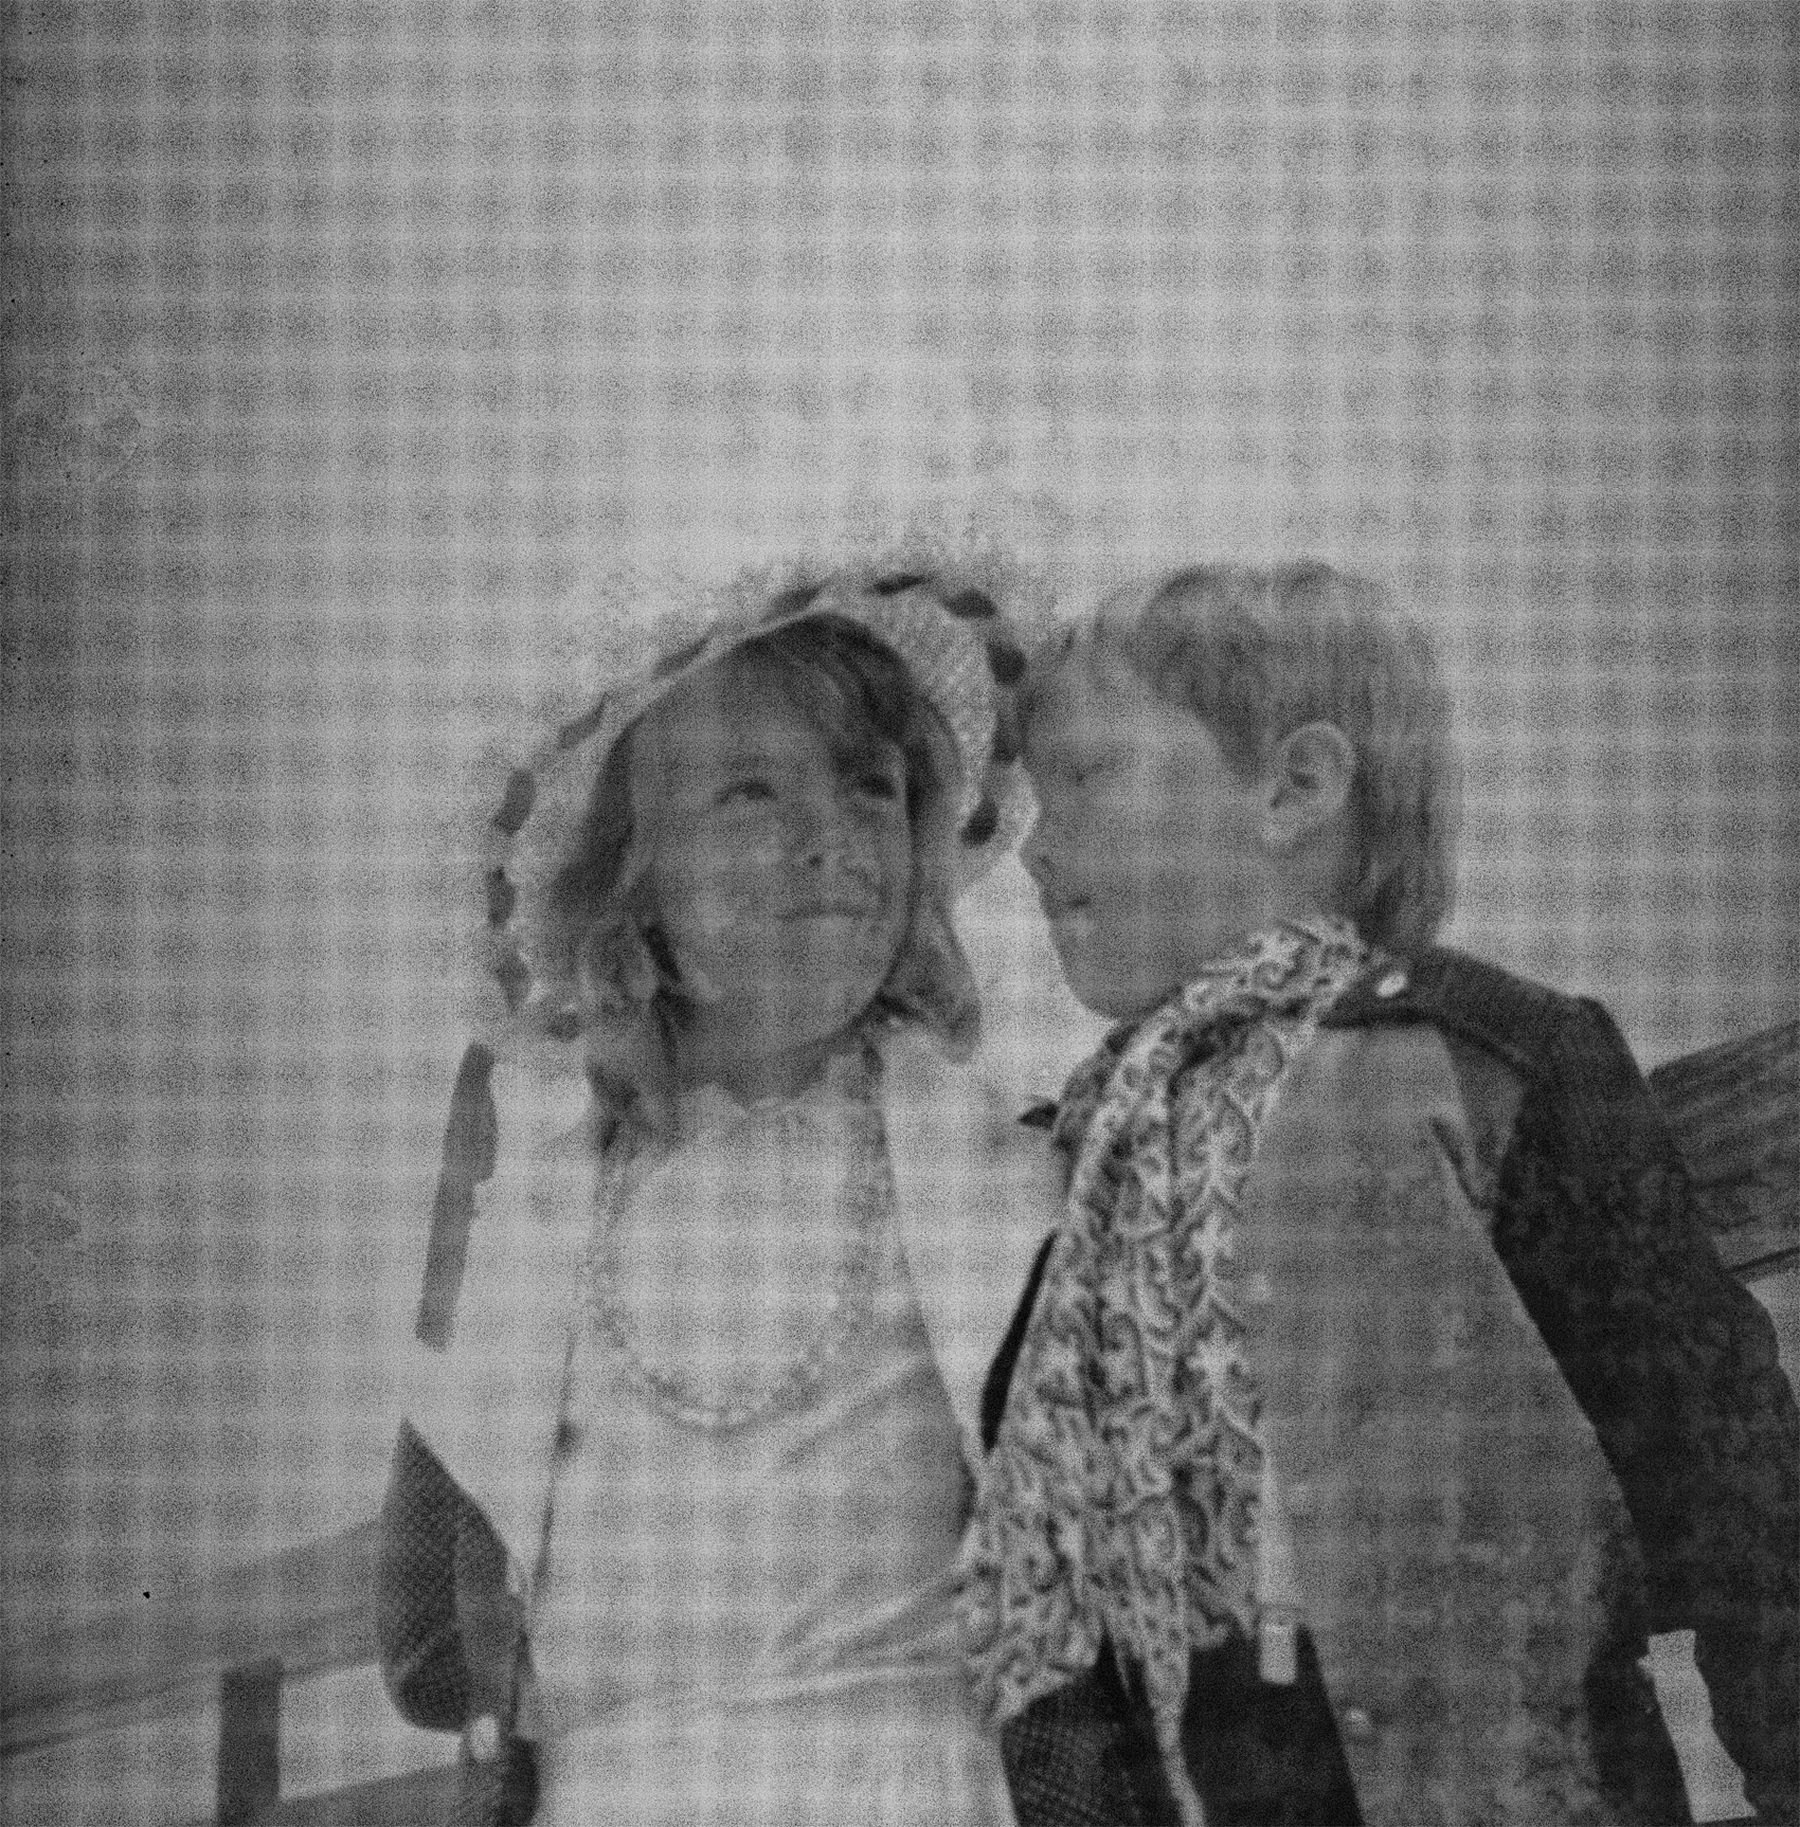 Image Description: Photograph features a young boy and a girl. The girl (left) is wearing sun hat, her hair down, with a white dress, what seems to be pearls around her neck, and a white and grey jacket. The boy (right) is wearing a black and grey jacket, a patterned scarf with trousers and white suspenders that can't be clearly seen the photograph. The girl is looking just past the boy in the image to her left (our right), looking into the distance, possibly at someone else whilst the boy is looking at the girl. Not much scene in this photograph, except for sky and one plank of fencing behind them, which they seem to be leaning on.